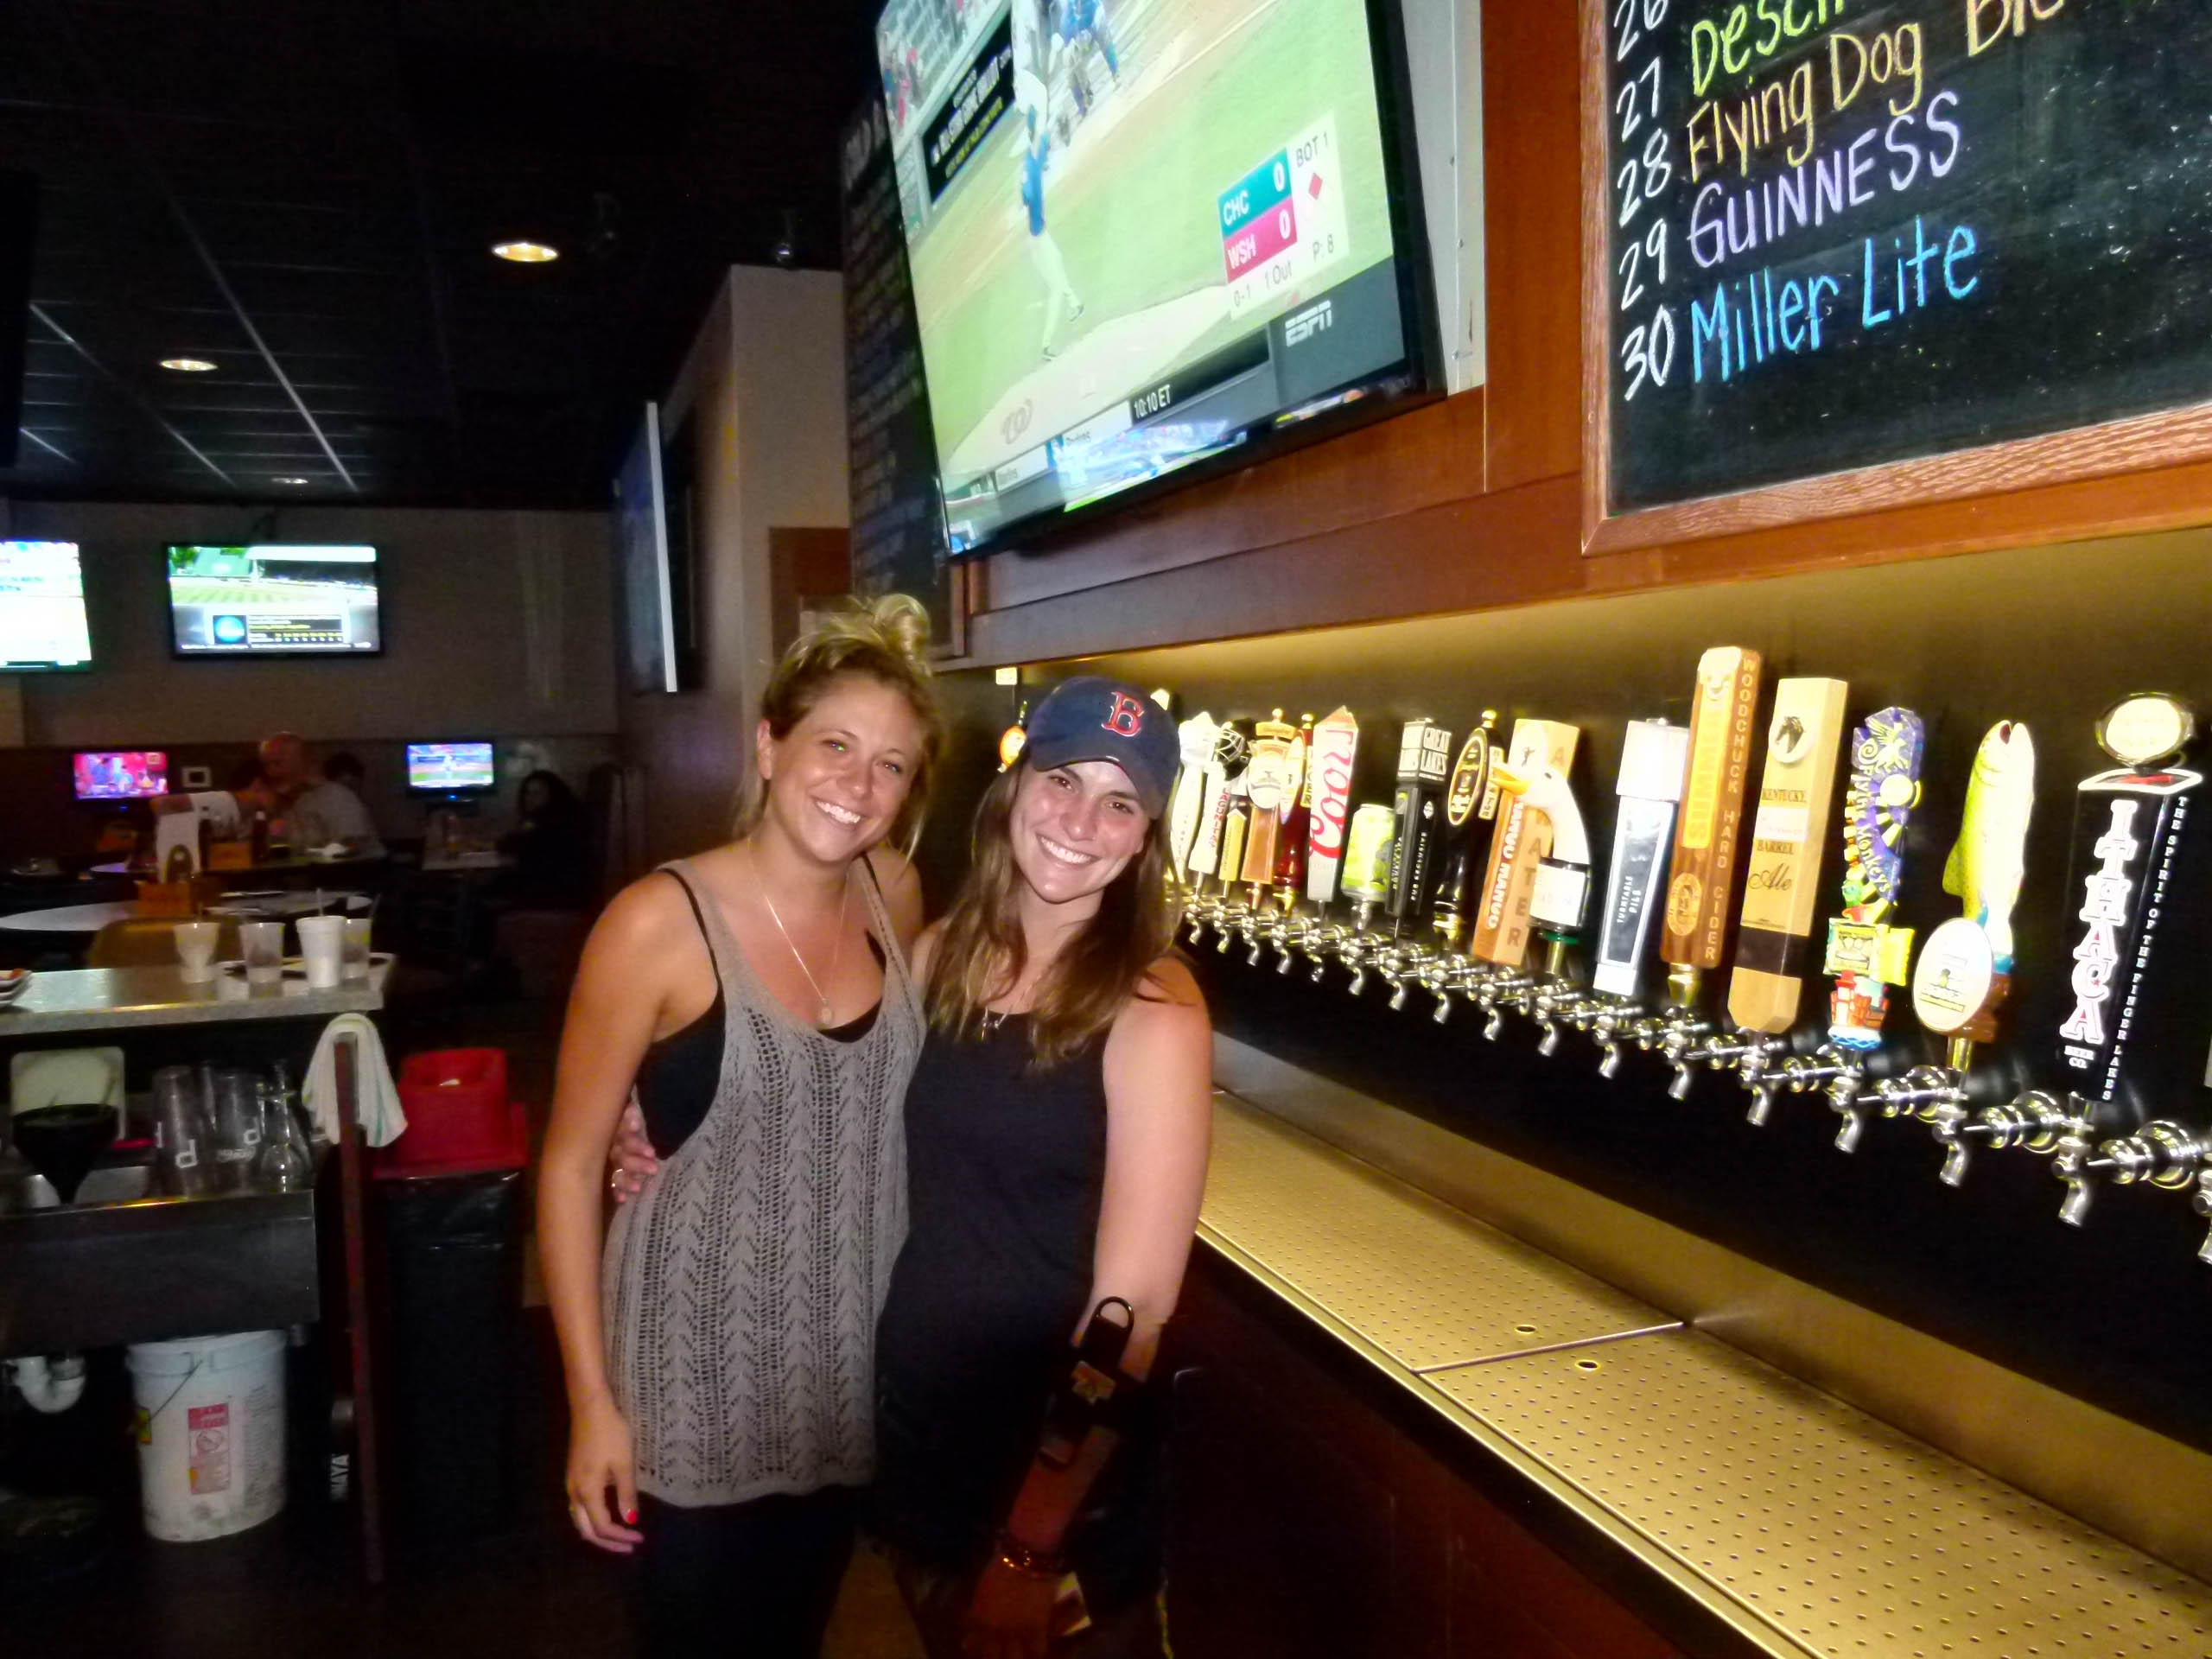 A wide selection of beers on tap and friendly servers and bartenders are two of the highlights at Carnivore's. The friendly faces pictured here are Rachel Zentgraf (l.) and Jen Kumar (r.).